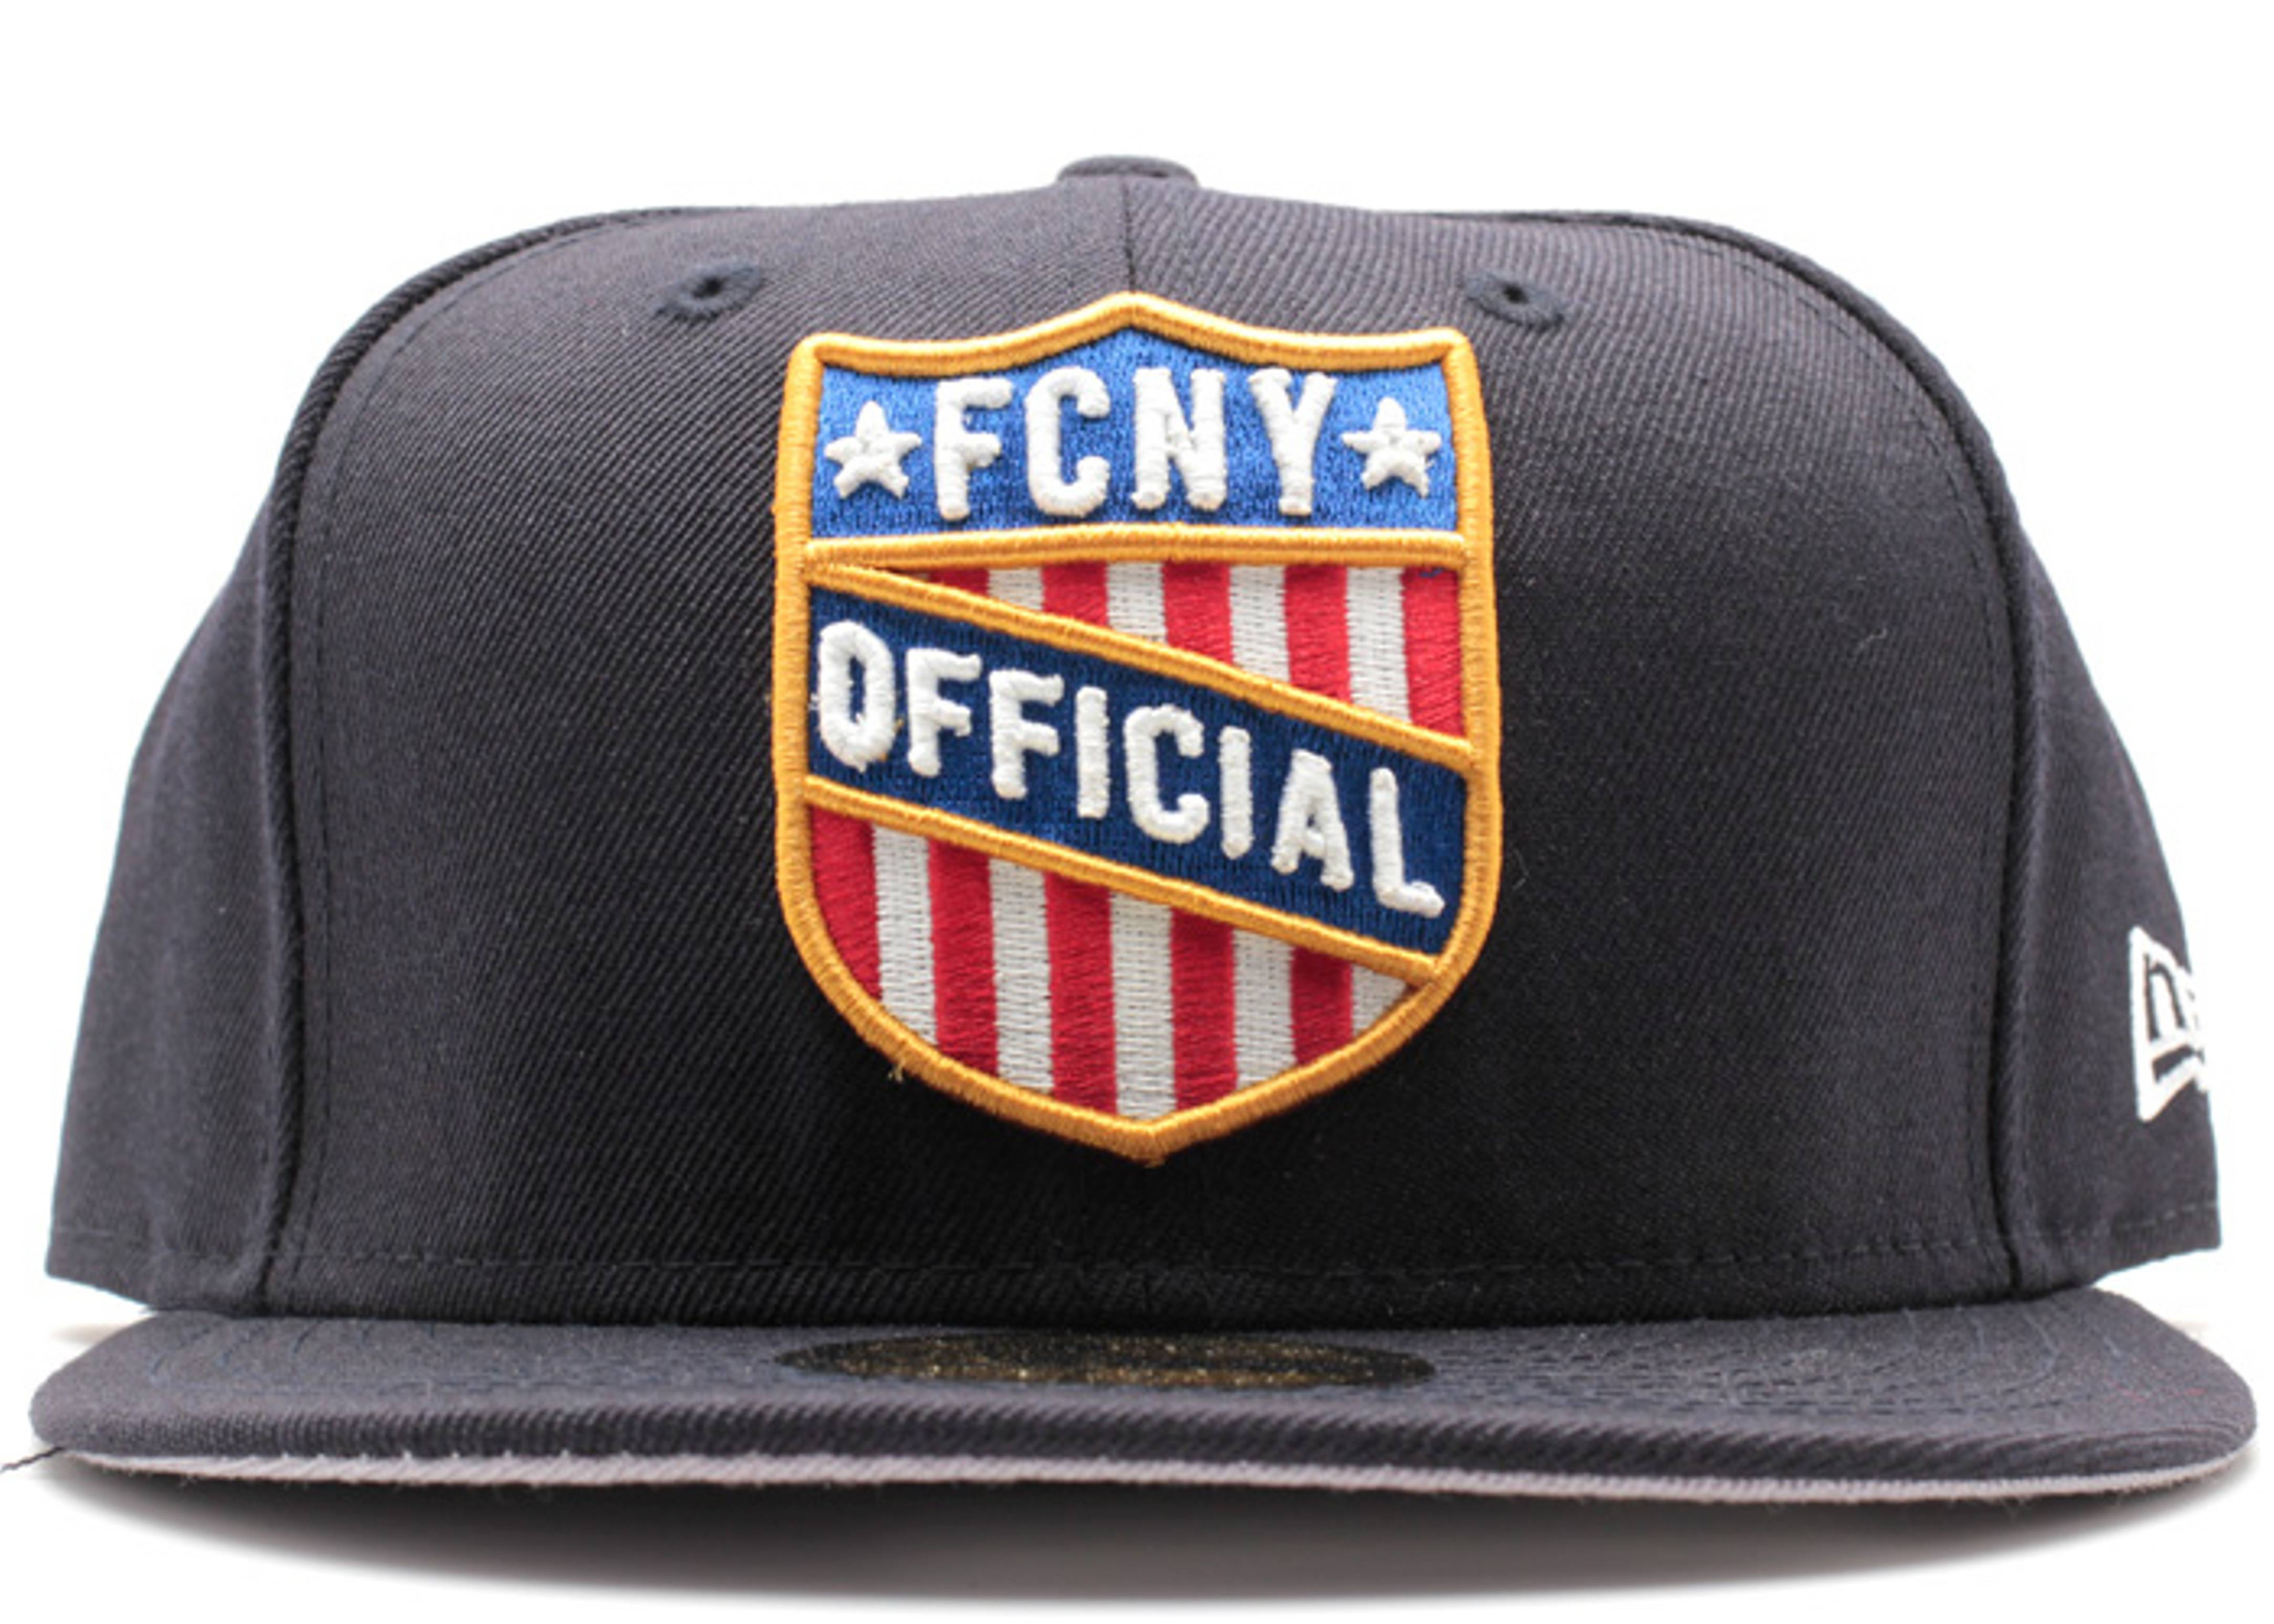 fcny official badge fitted